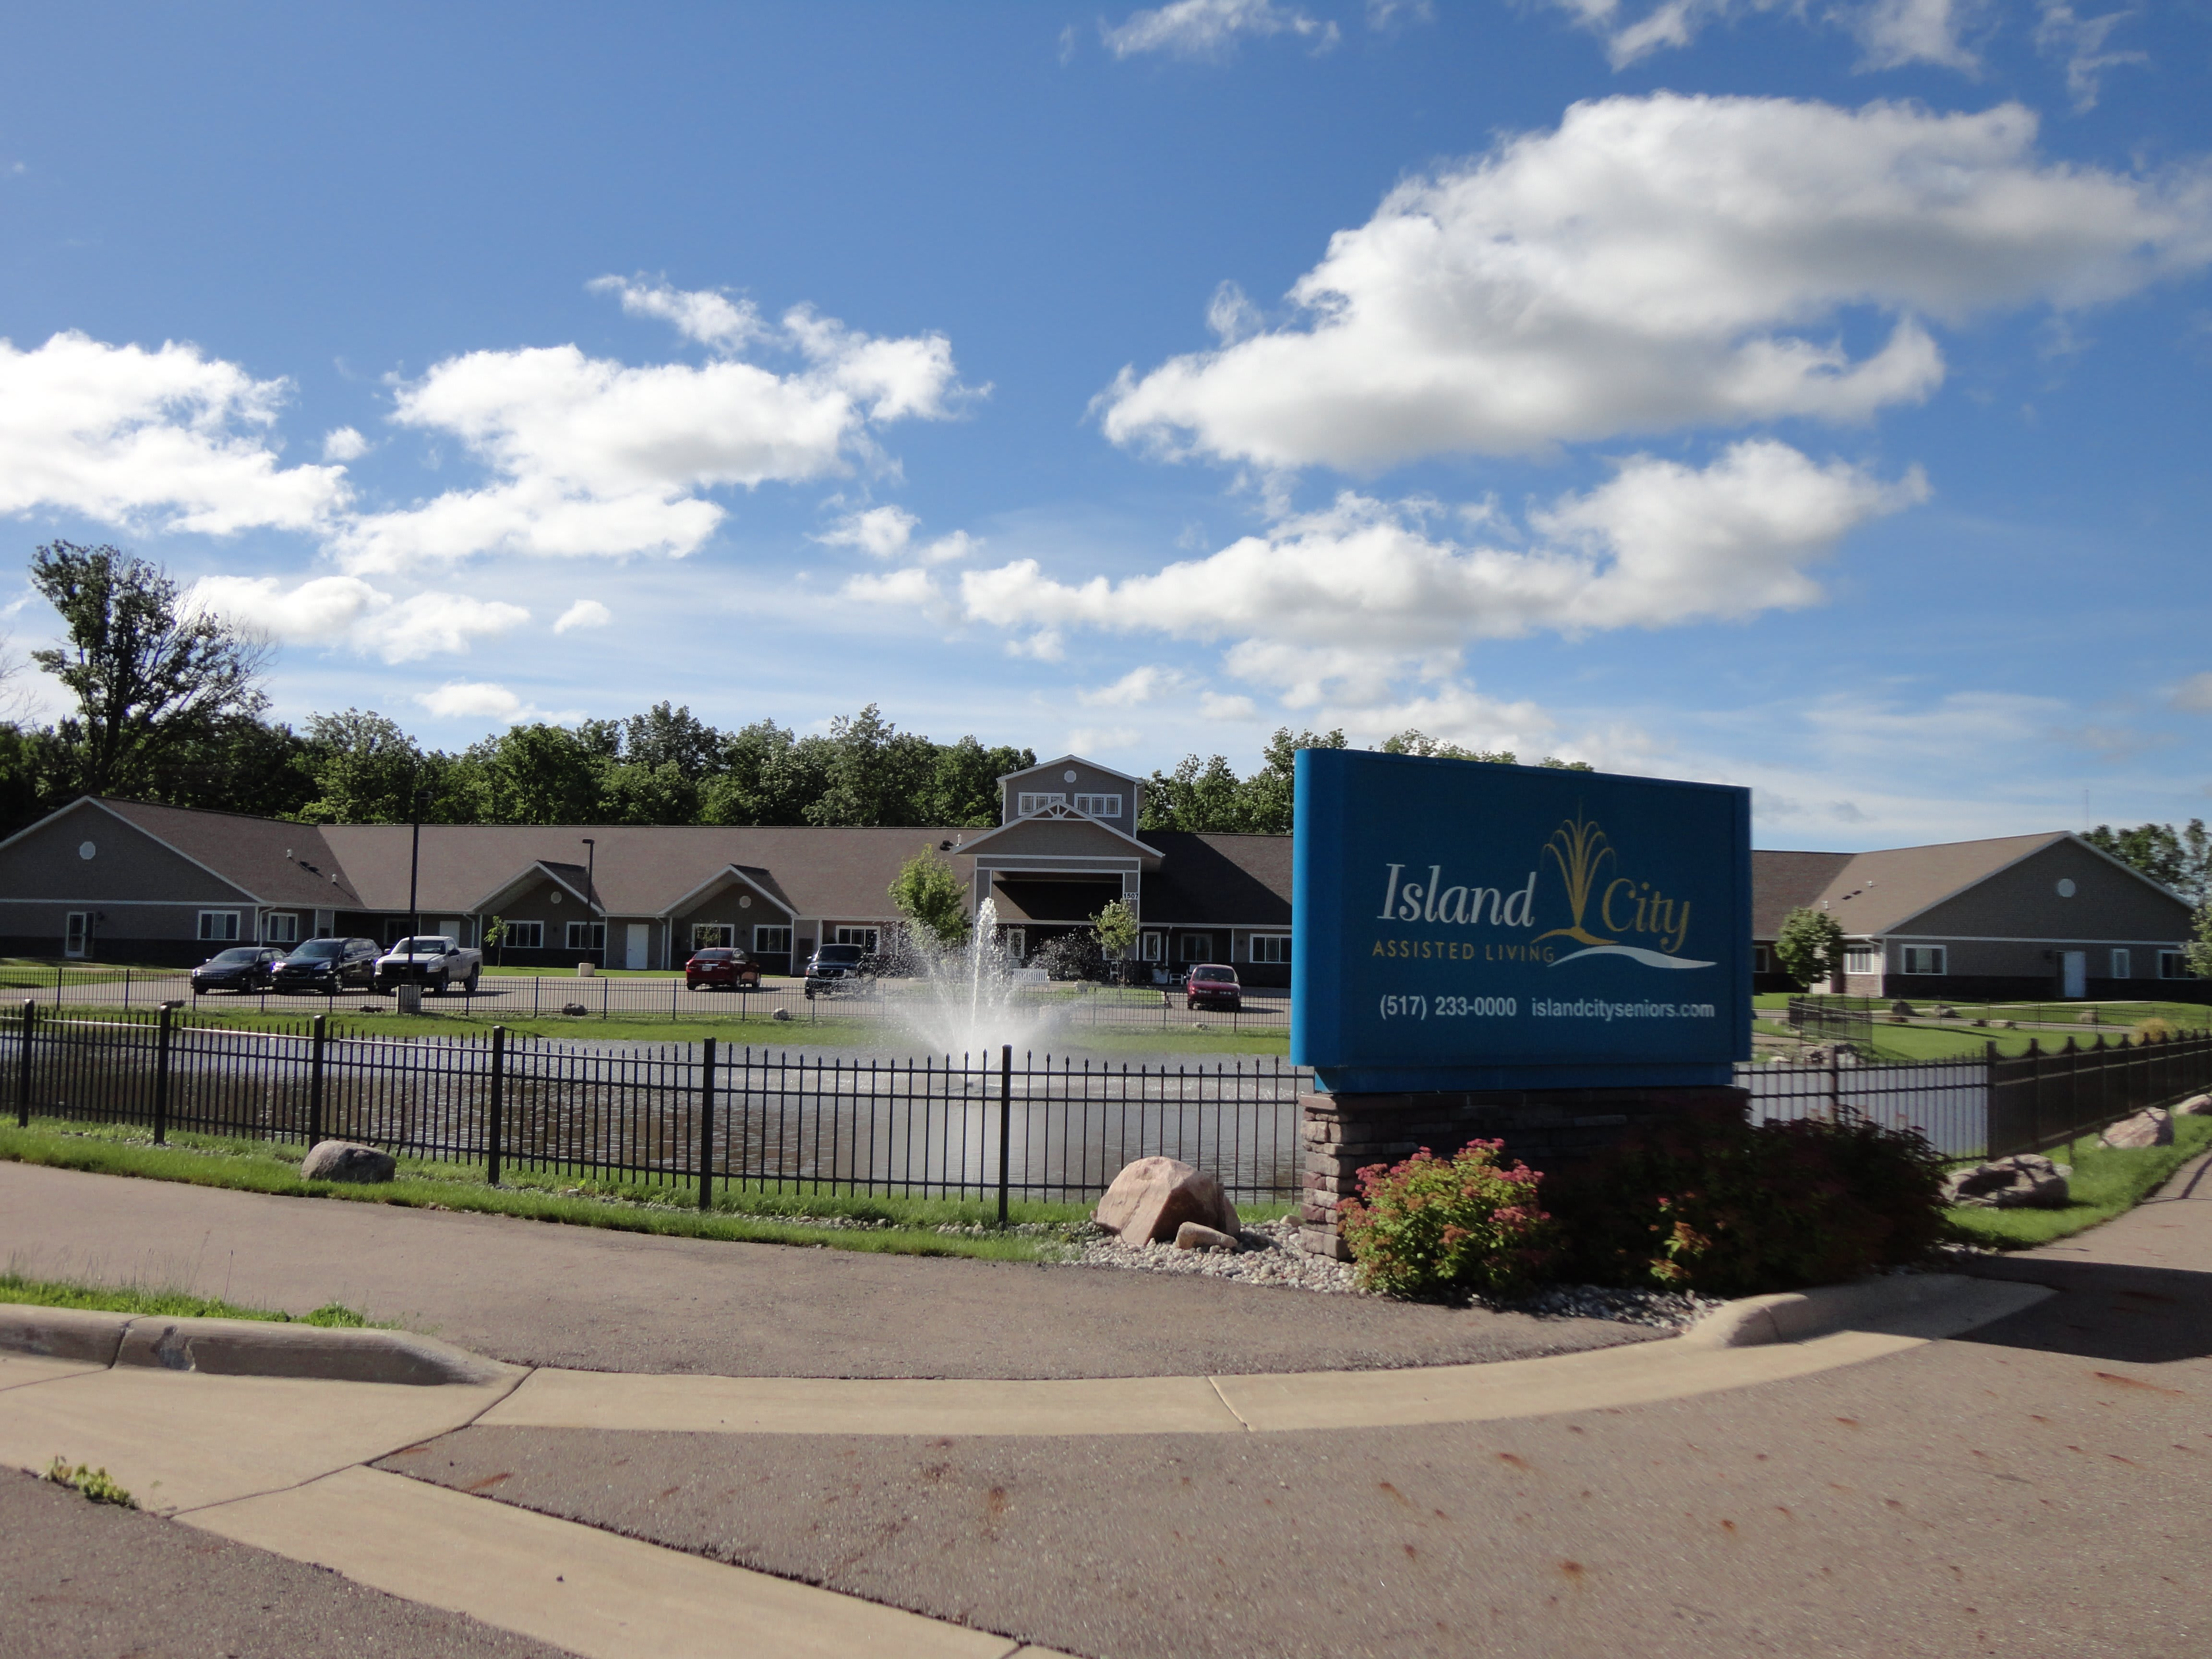 Photo 1 of Island City Assisted Living